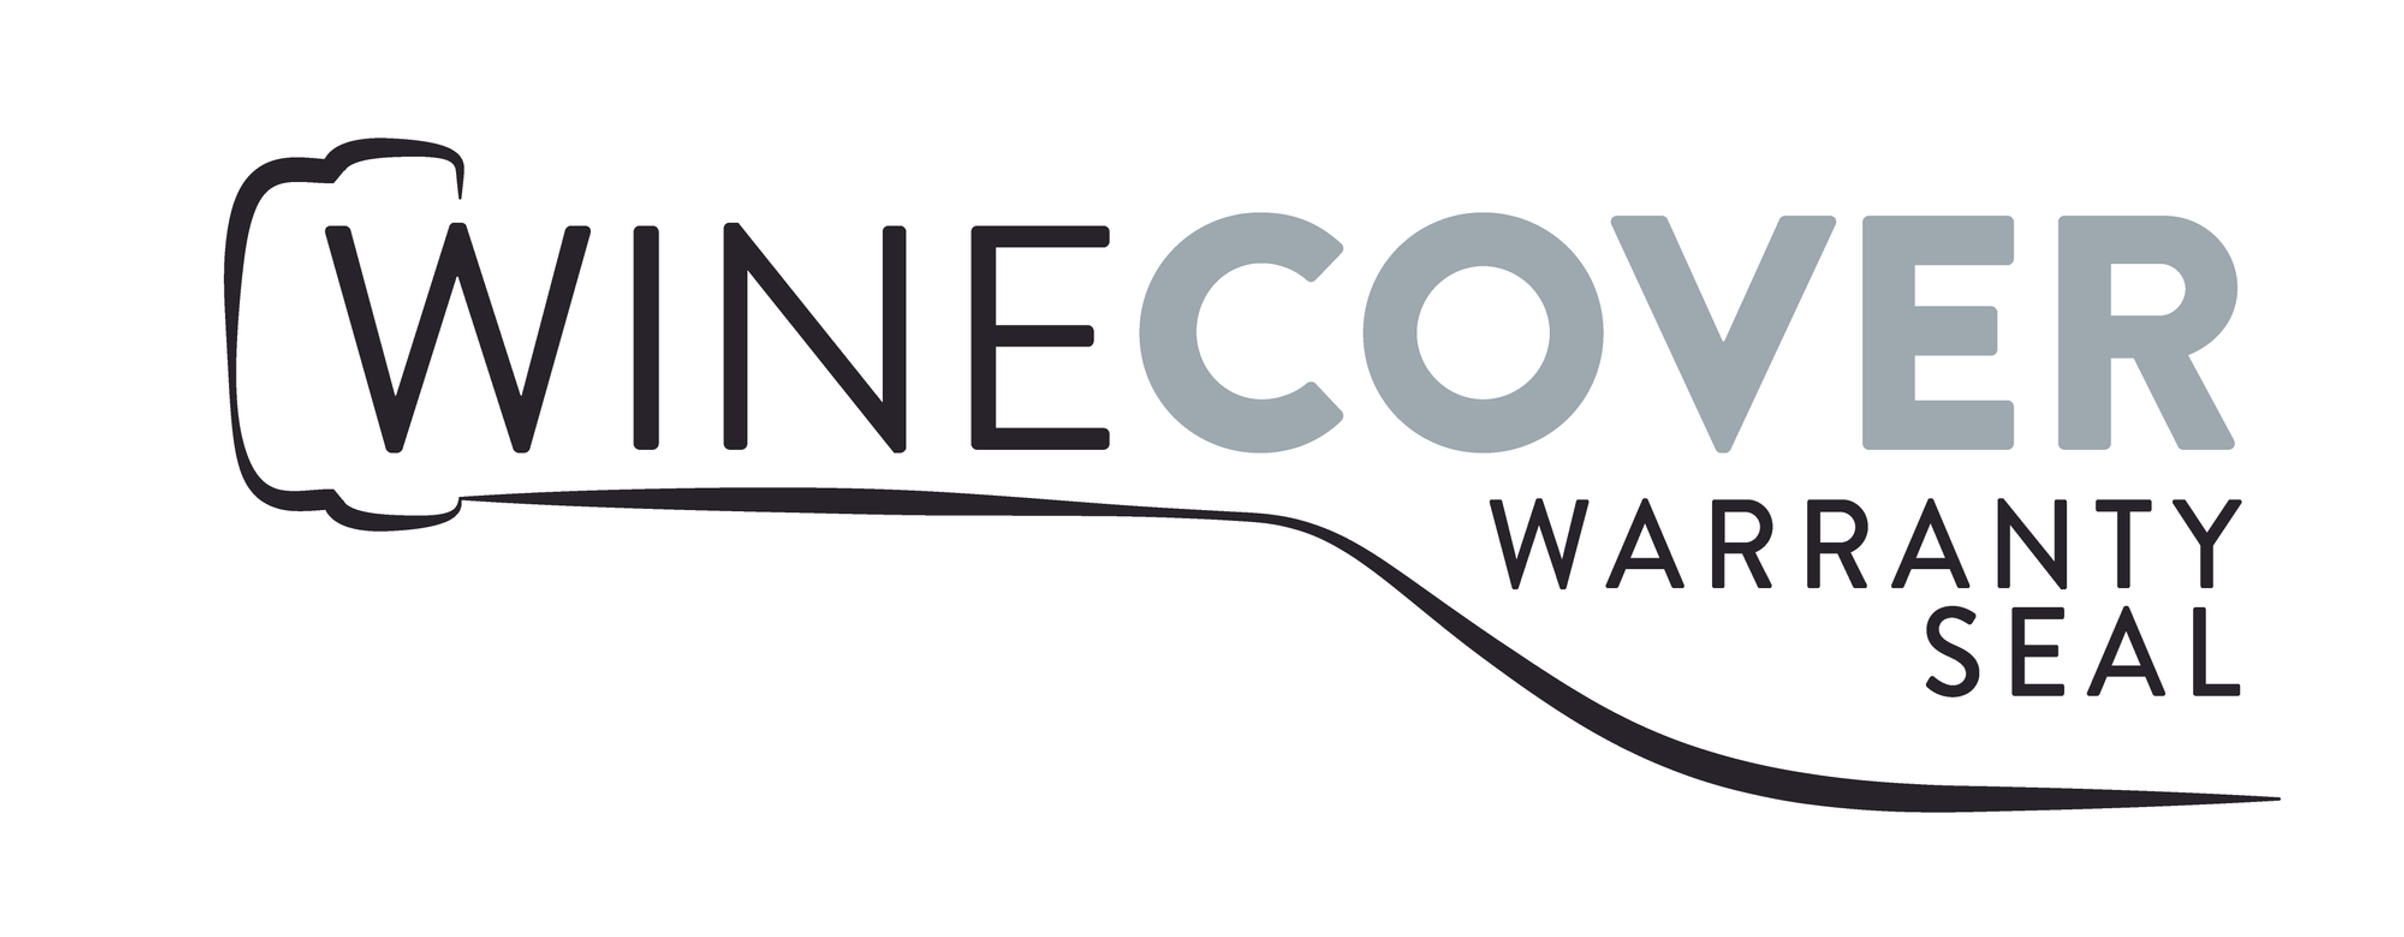 WineCover